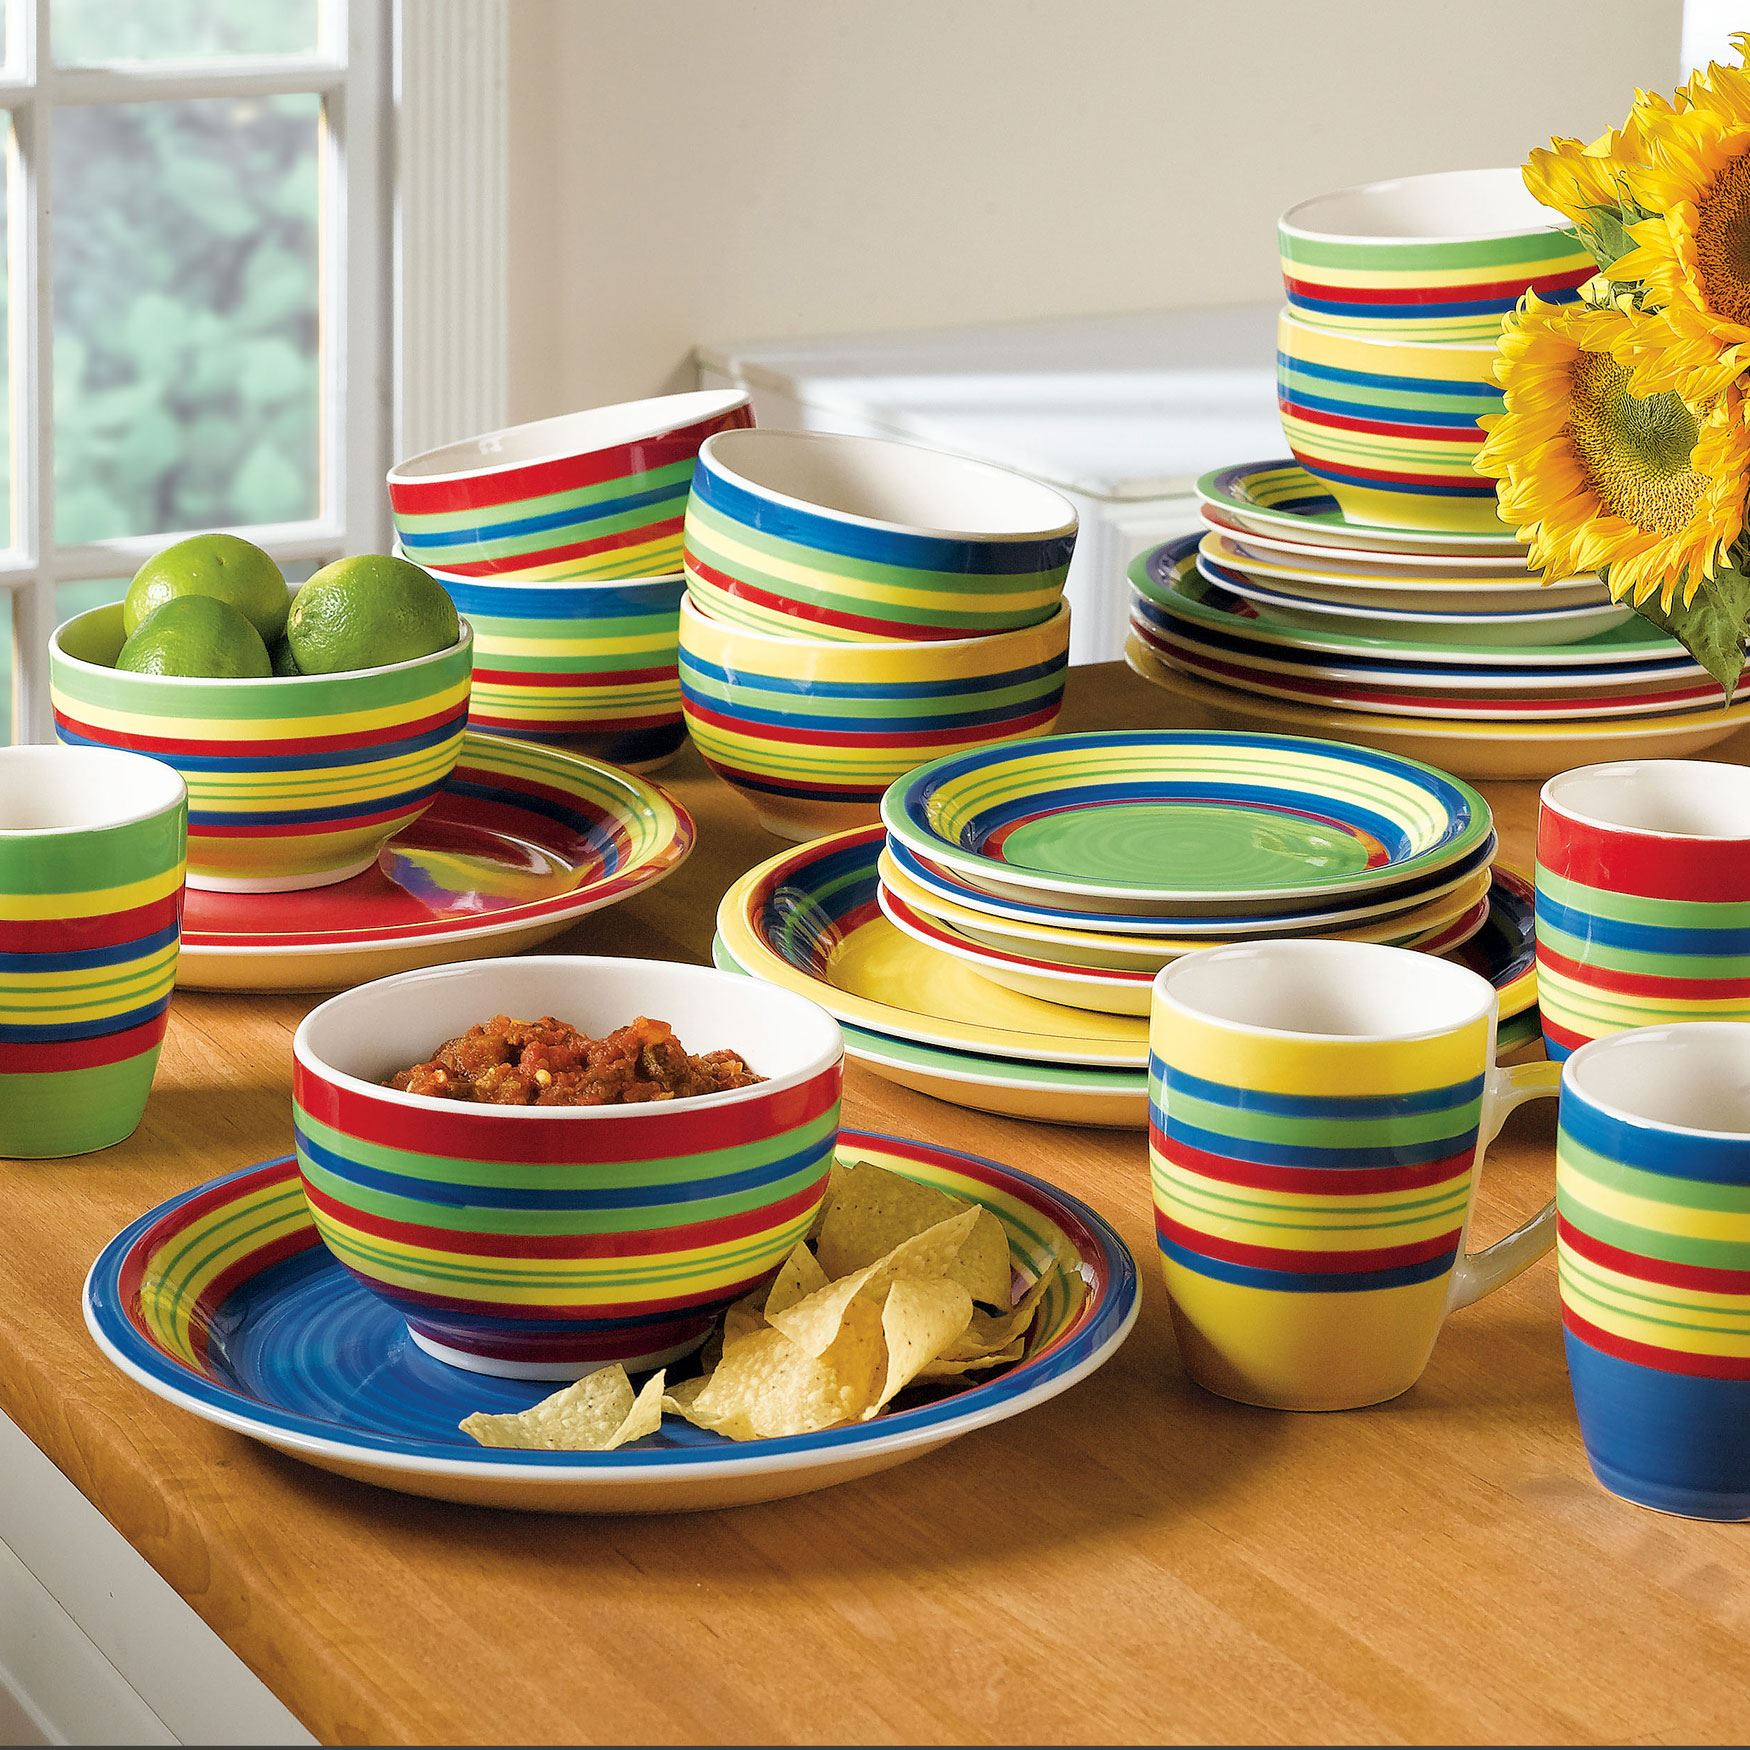 Thomson Pottery Stoneware Dinnerware Set | Ikea Dinnerware Set | Stoneware Dinnerware Sets & Dining Room: Thomson Pottery Stoneware Dinnerware Set | Ikea ...